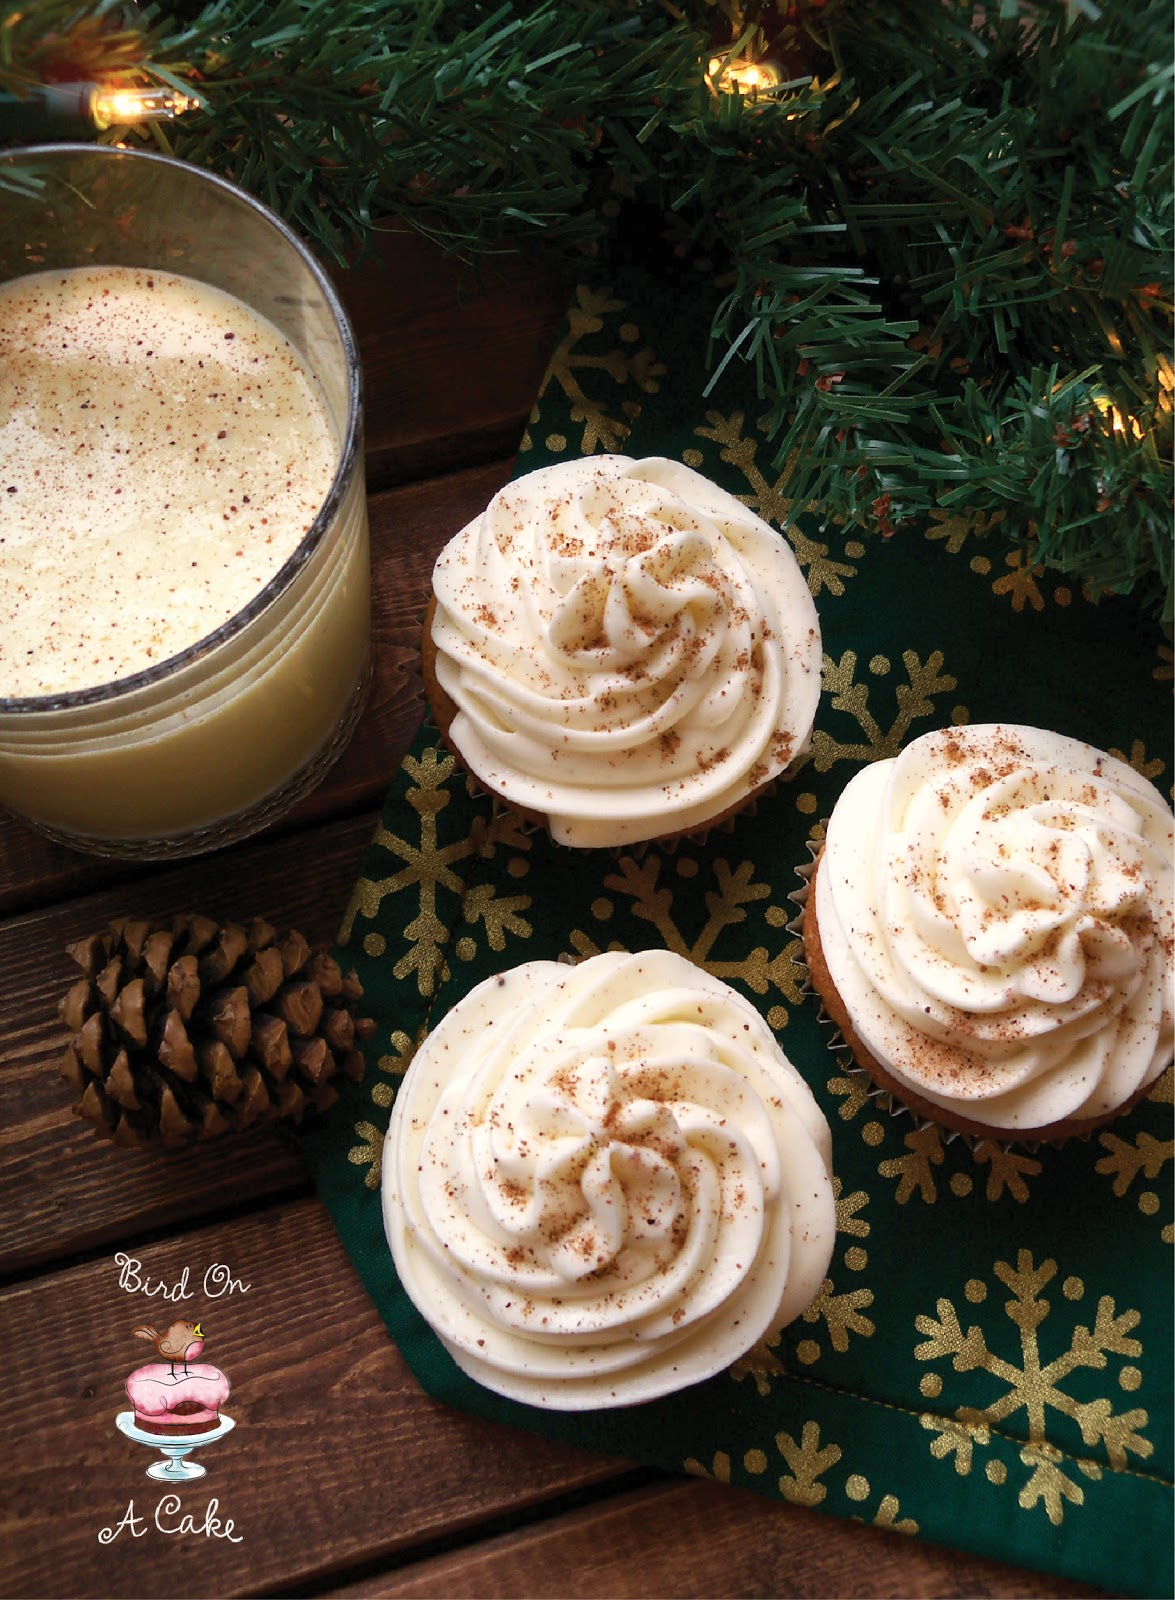 Bird On A Cake: Eggnog Cupcakes with Nutmeg Frosting